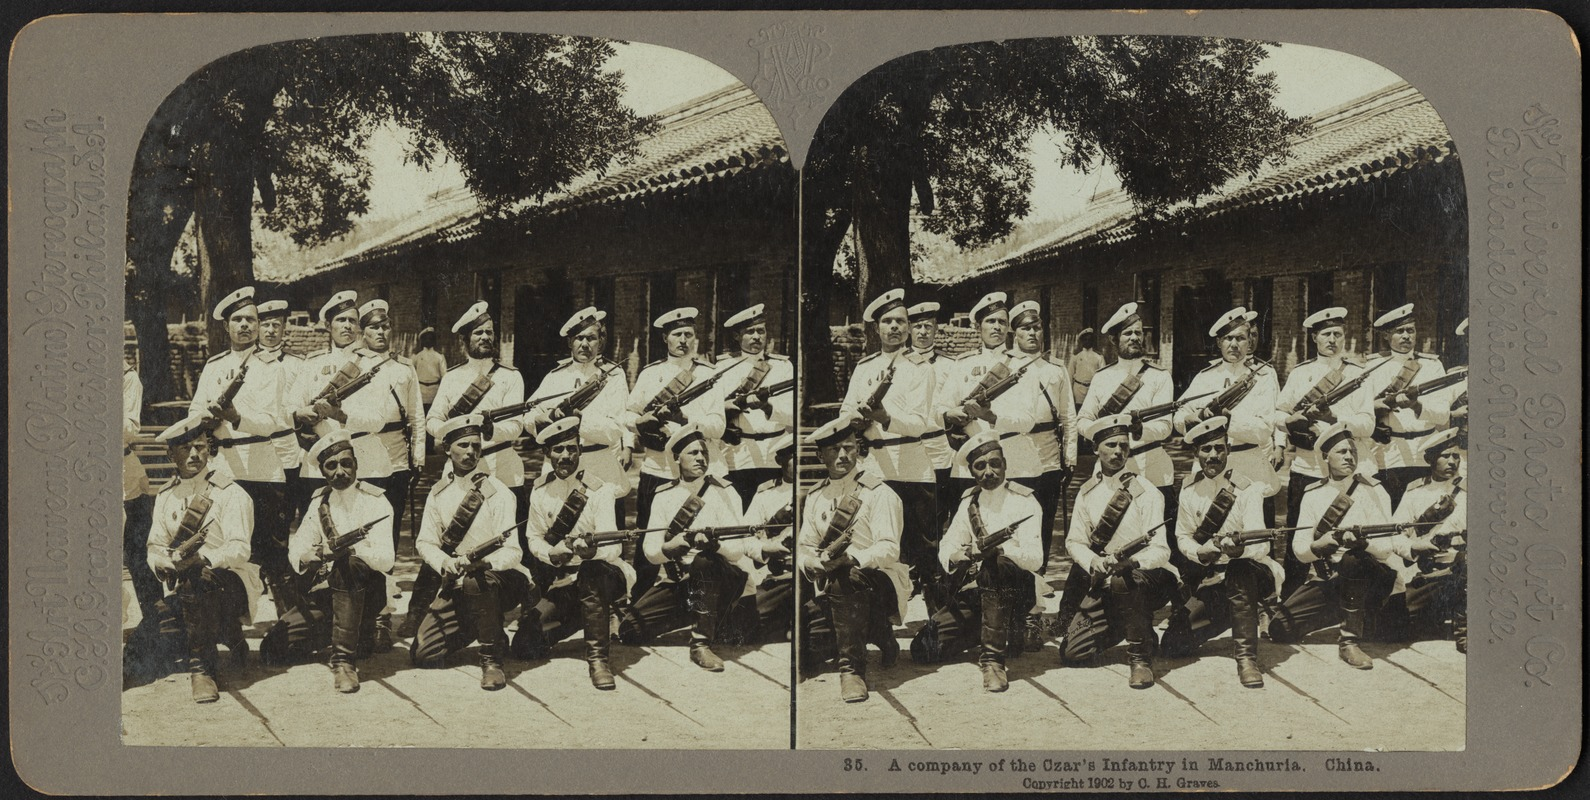 A company of the Czar's infantry in Manchuria, China